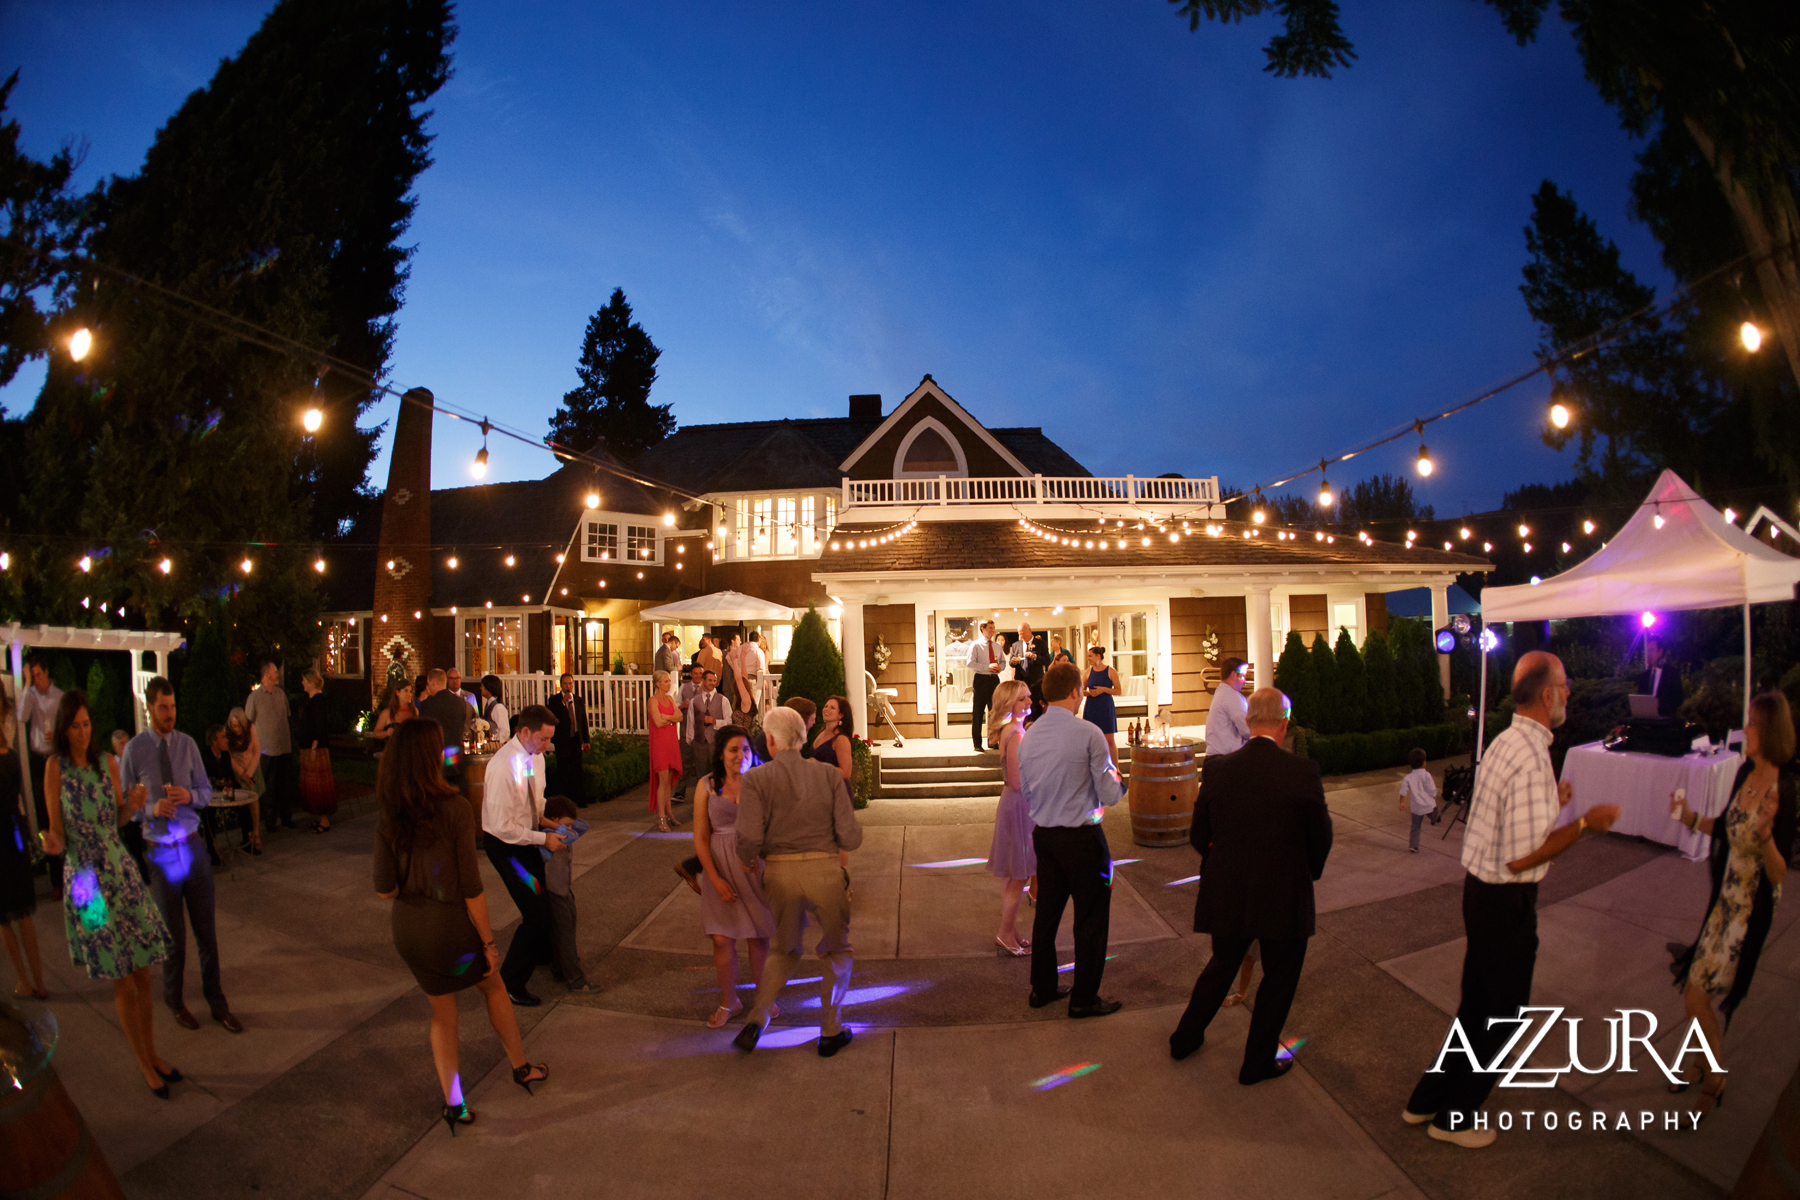 Laurel Creek Manor Wedding in Seattle | Evening dancing at Laurel Creek Manor with Italian cafe lights | Perfectly Posh Events, Seattle Wedding Planner | Azzura Photography